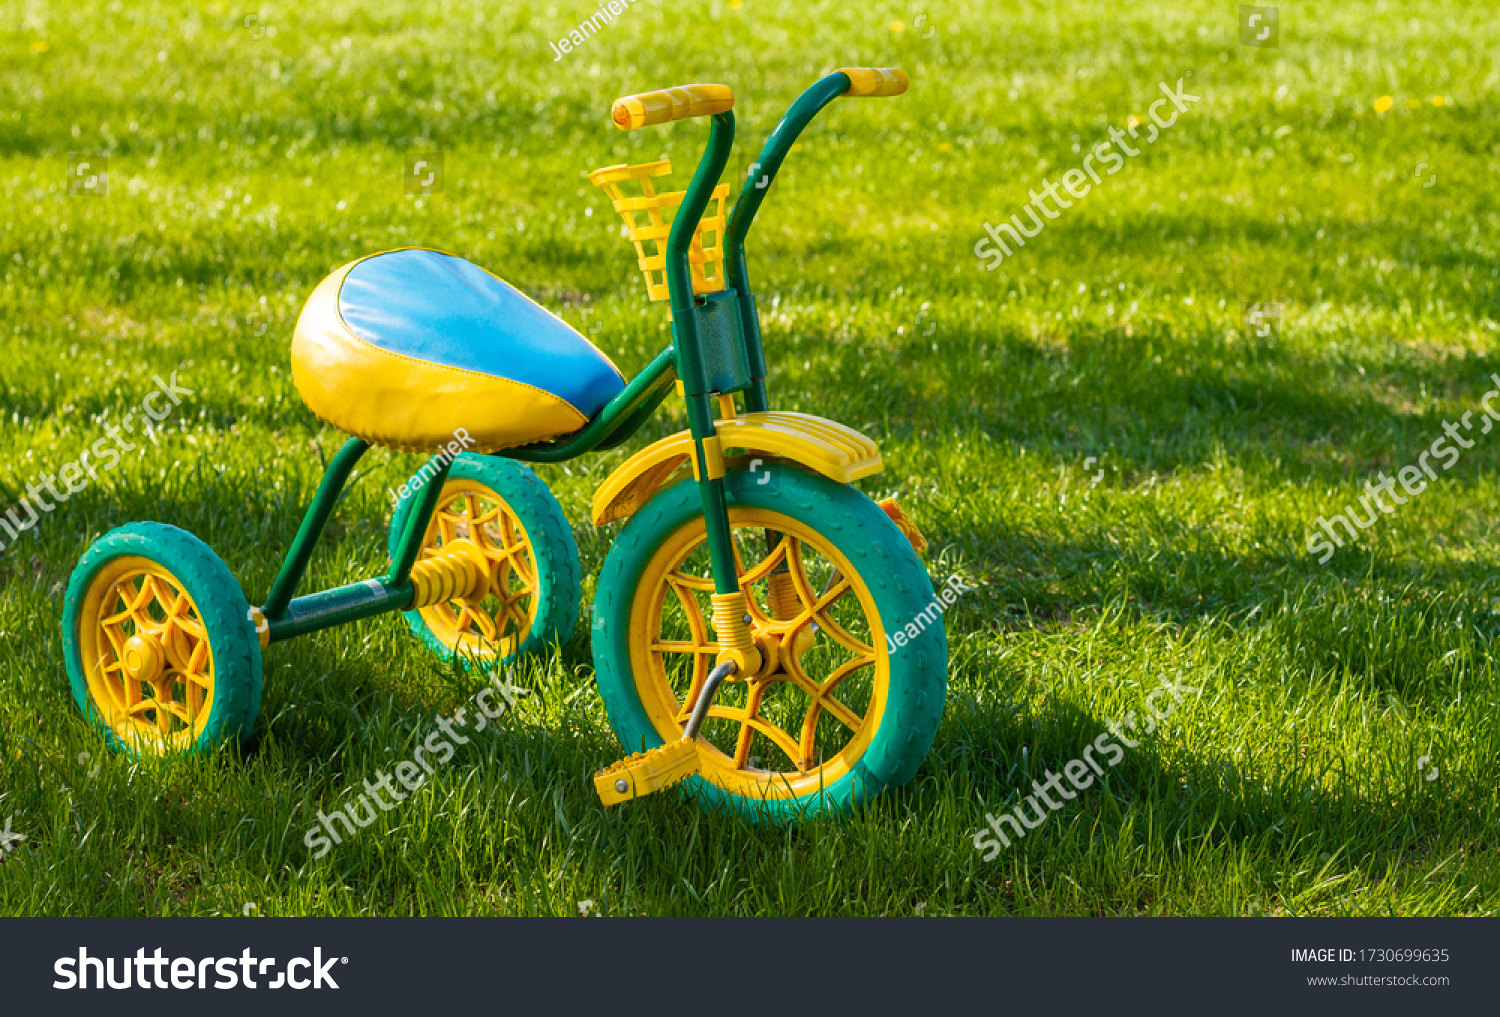 Small yellow and green children's tricycle standing on the grass on a sunny day. Copy space